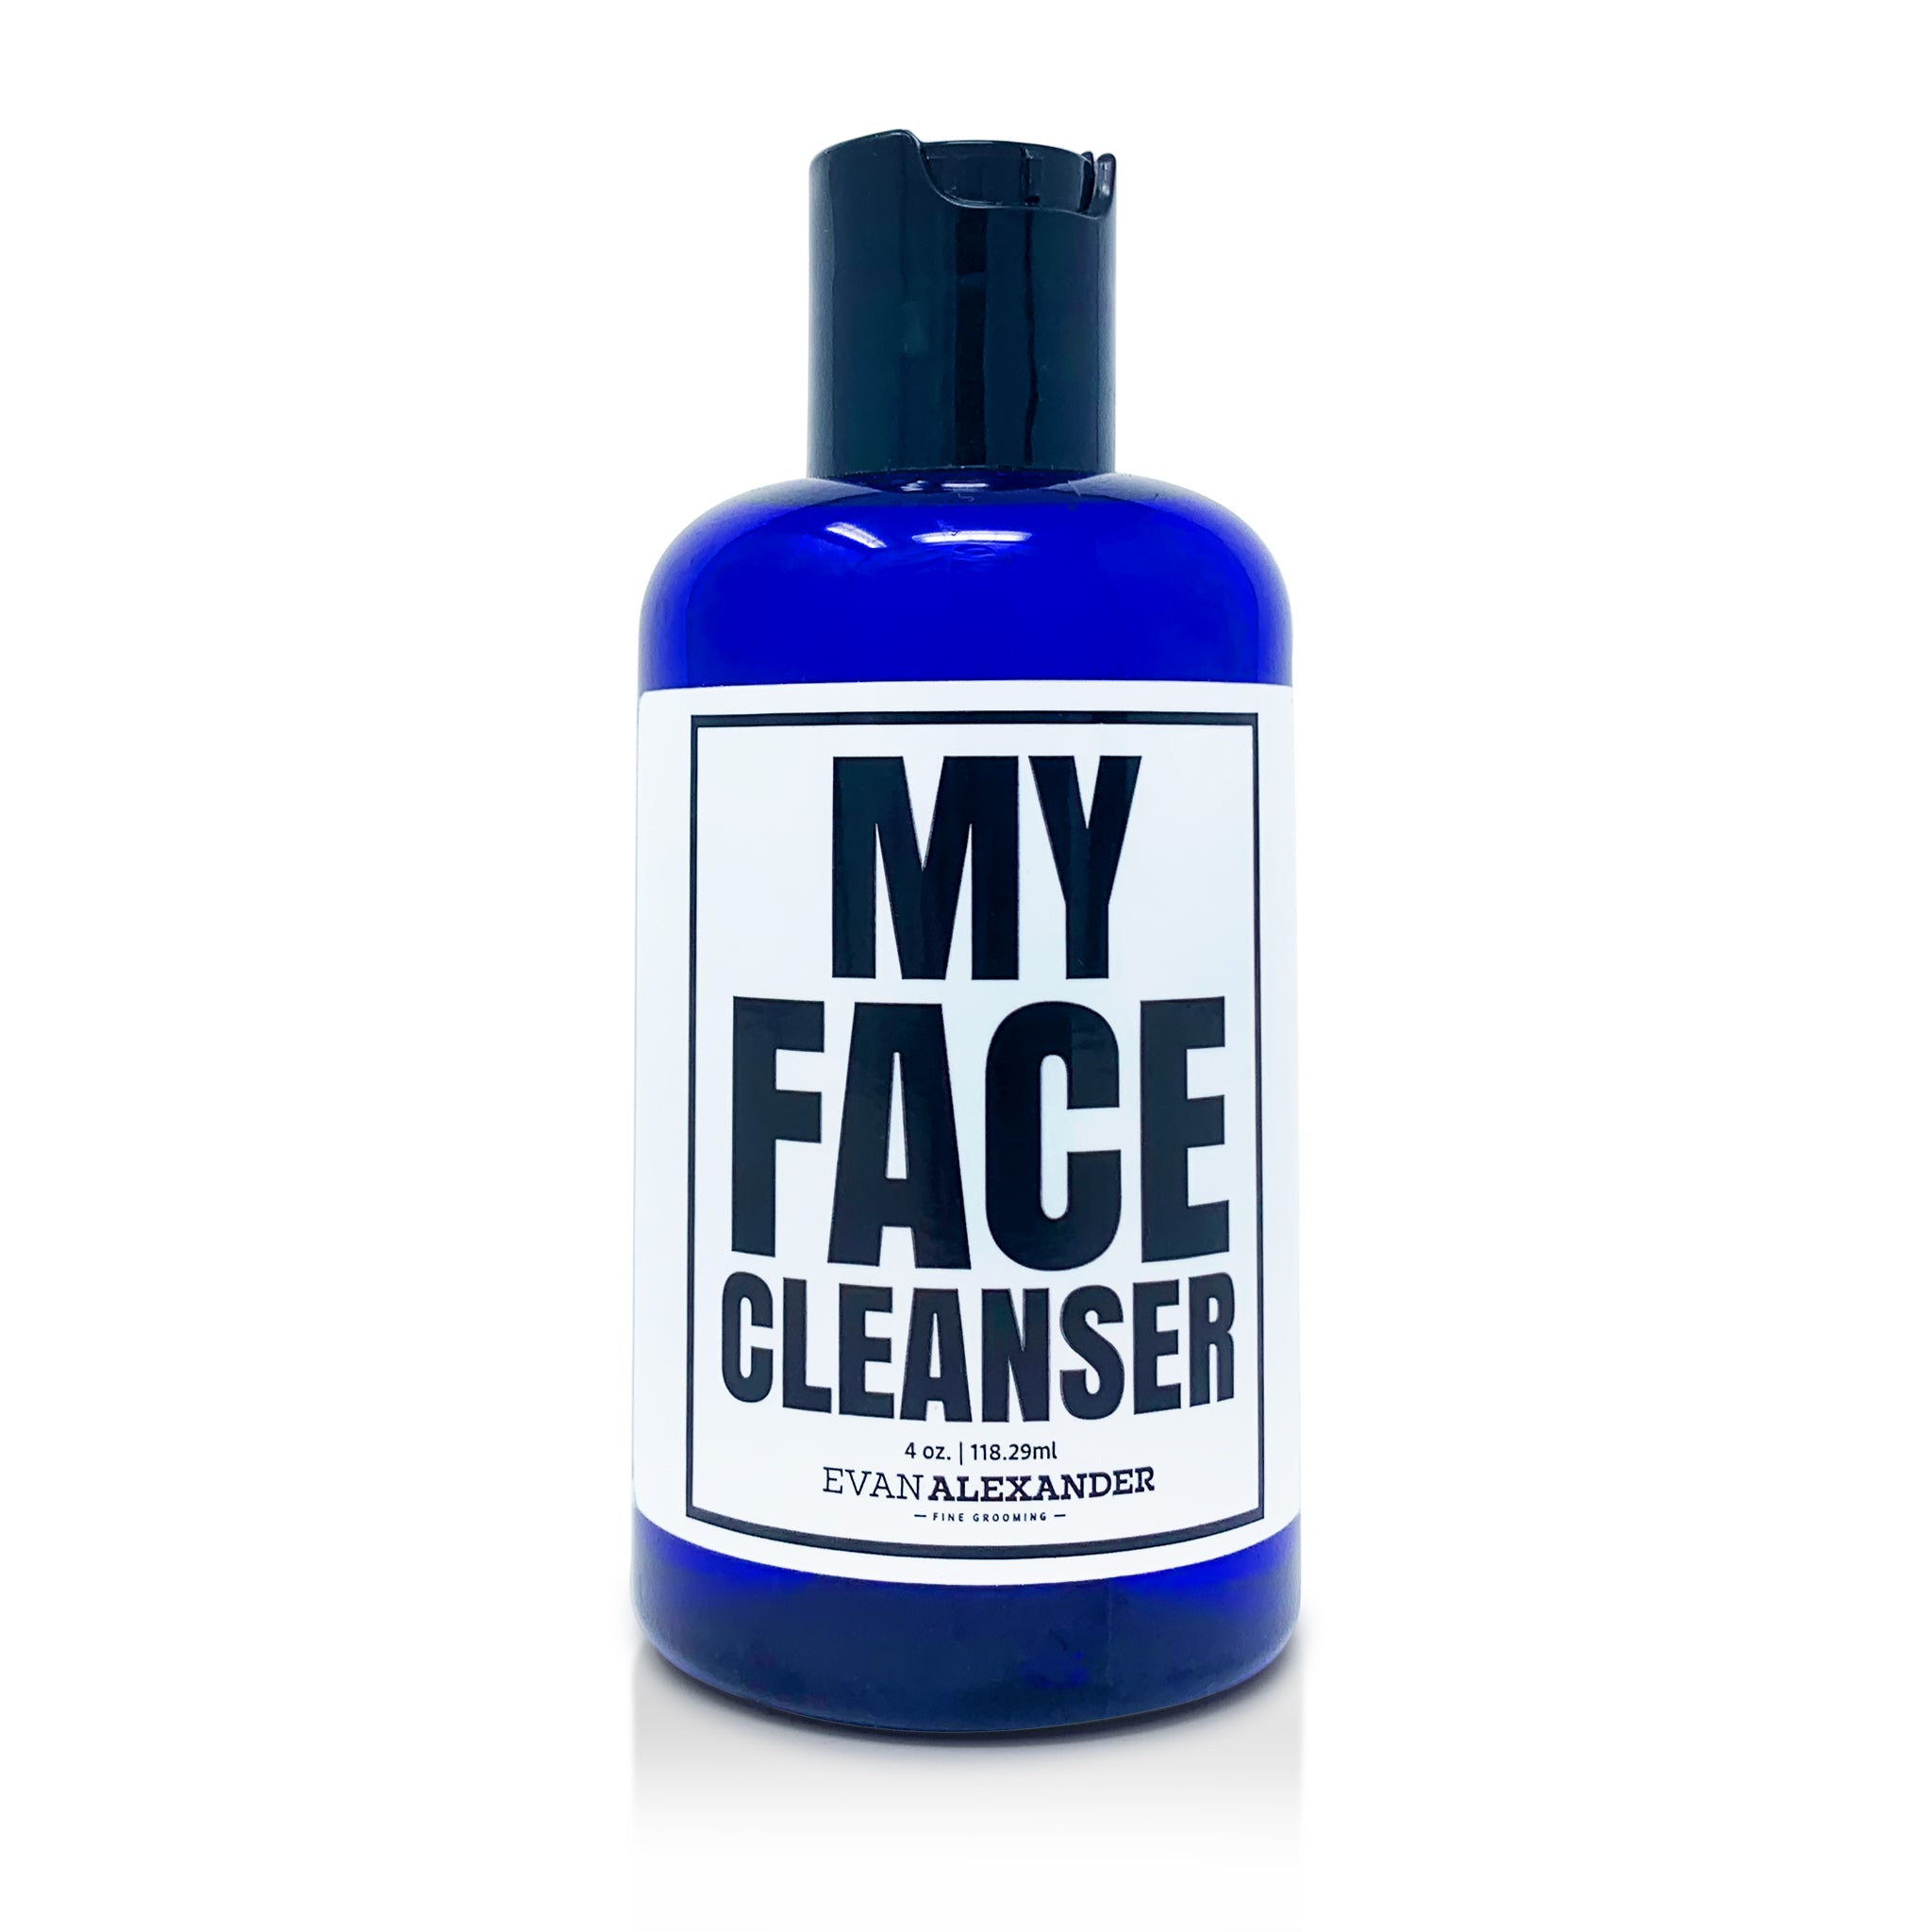 MY Face Cleanser